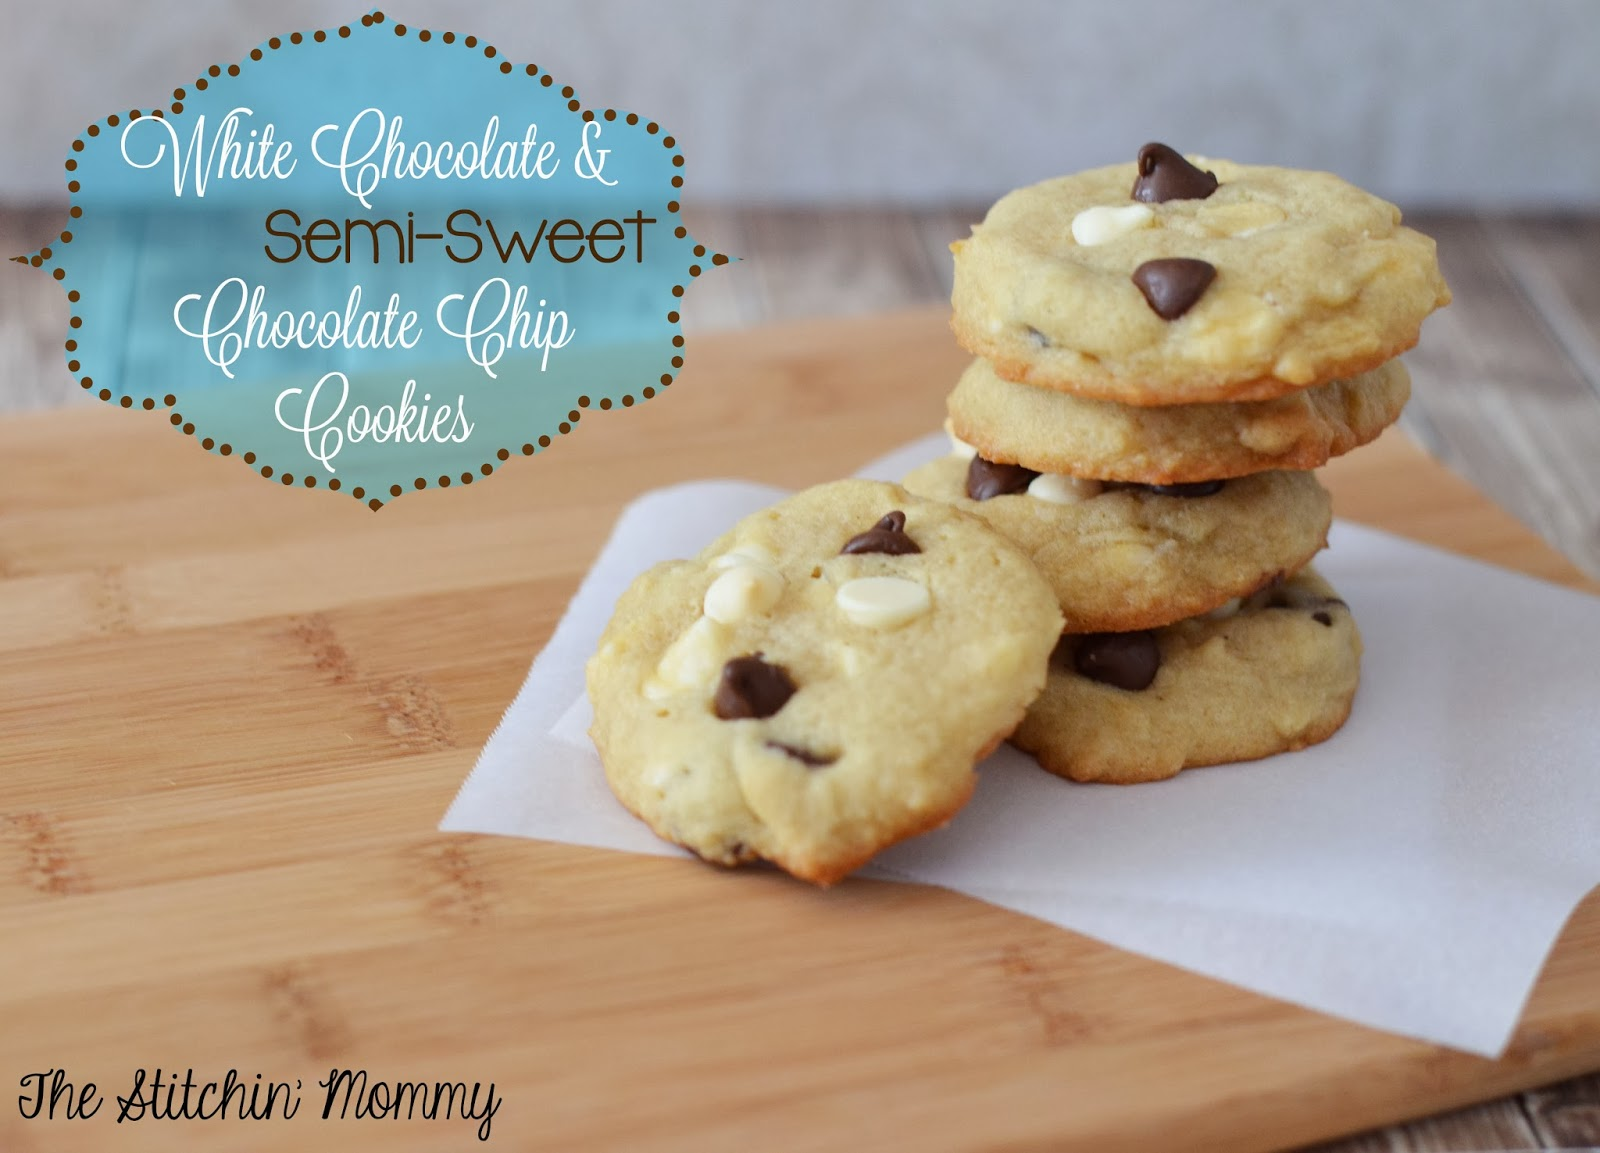 White Chocolate and Semi-Sweet Chocolate Chip Cookies by The Stitchin' Mommy